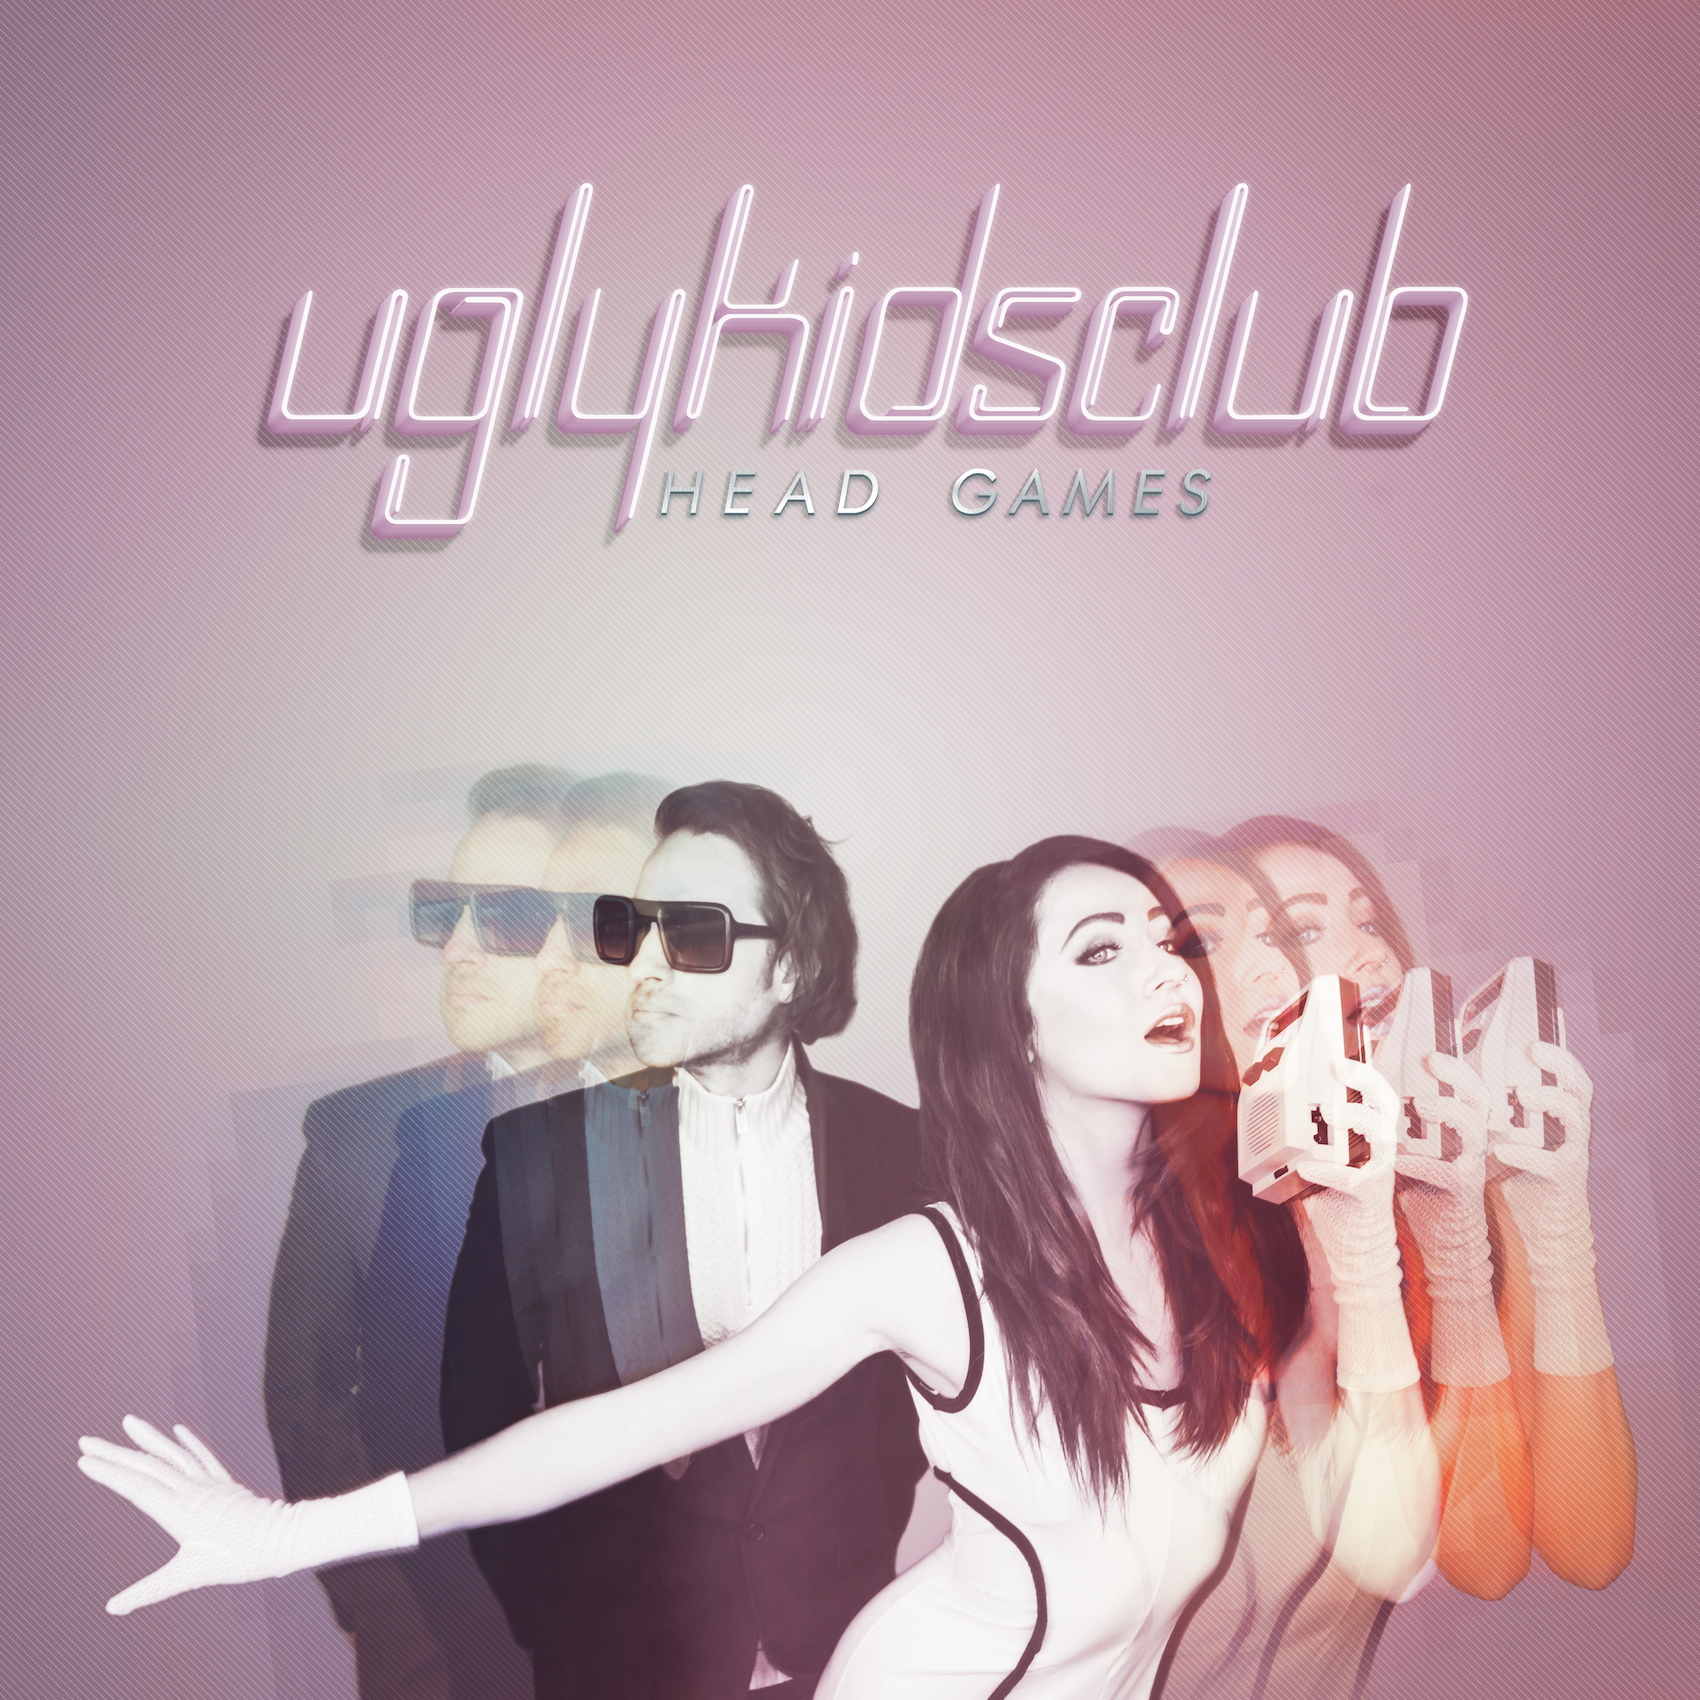 UKC_HeadGames_coverart_.jpg